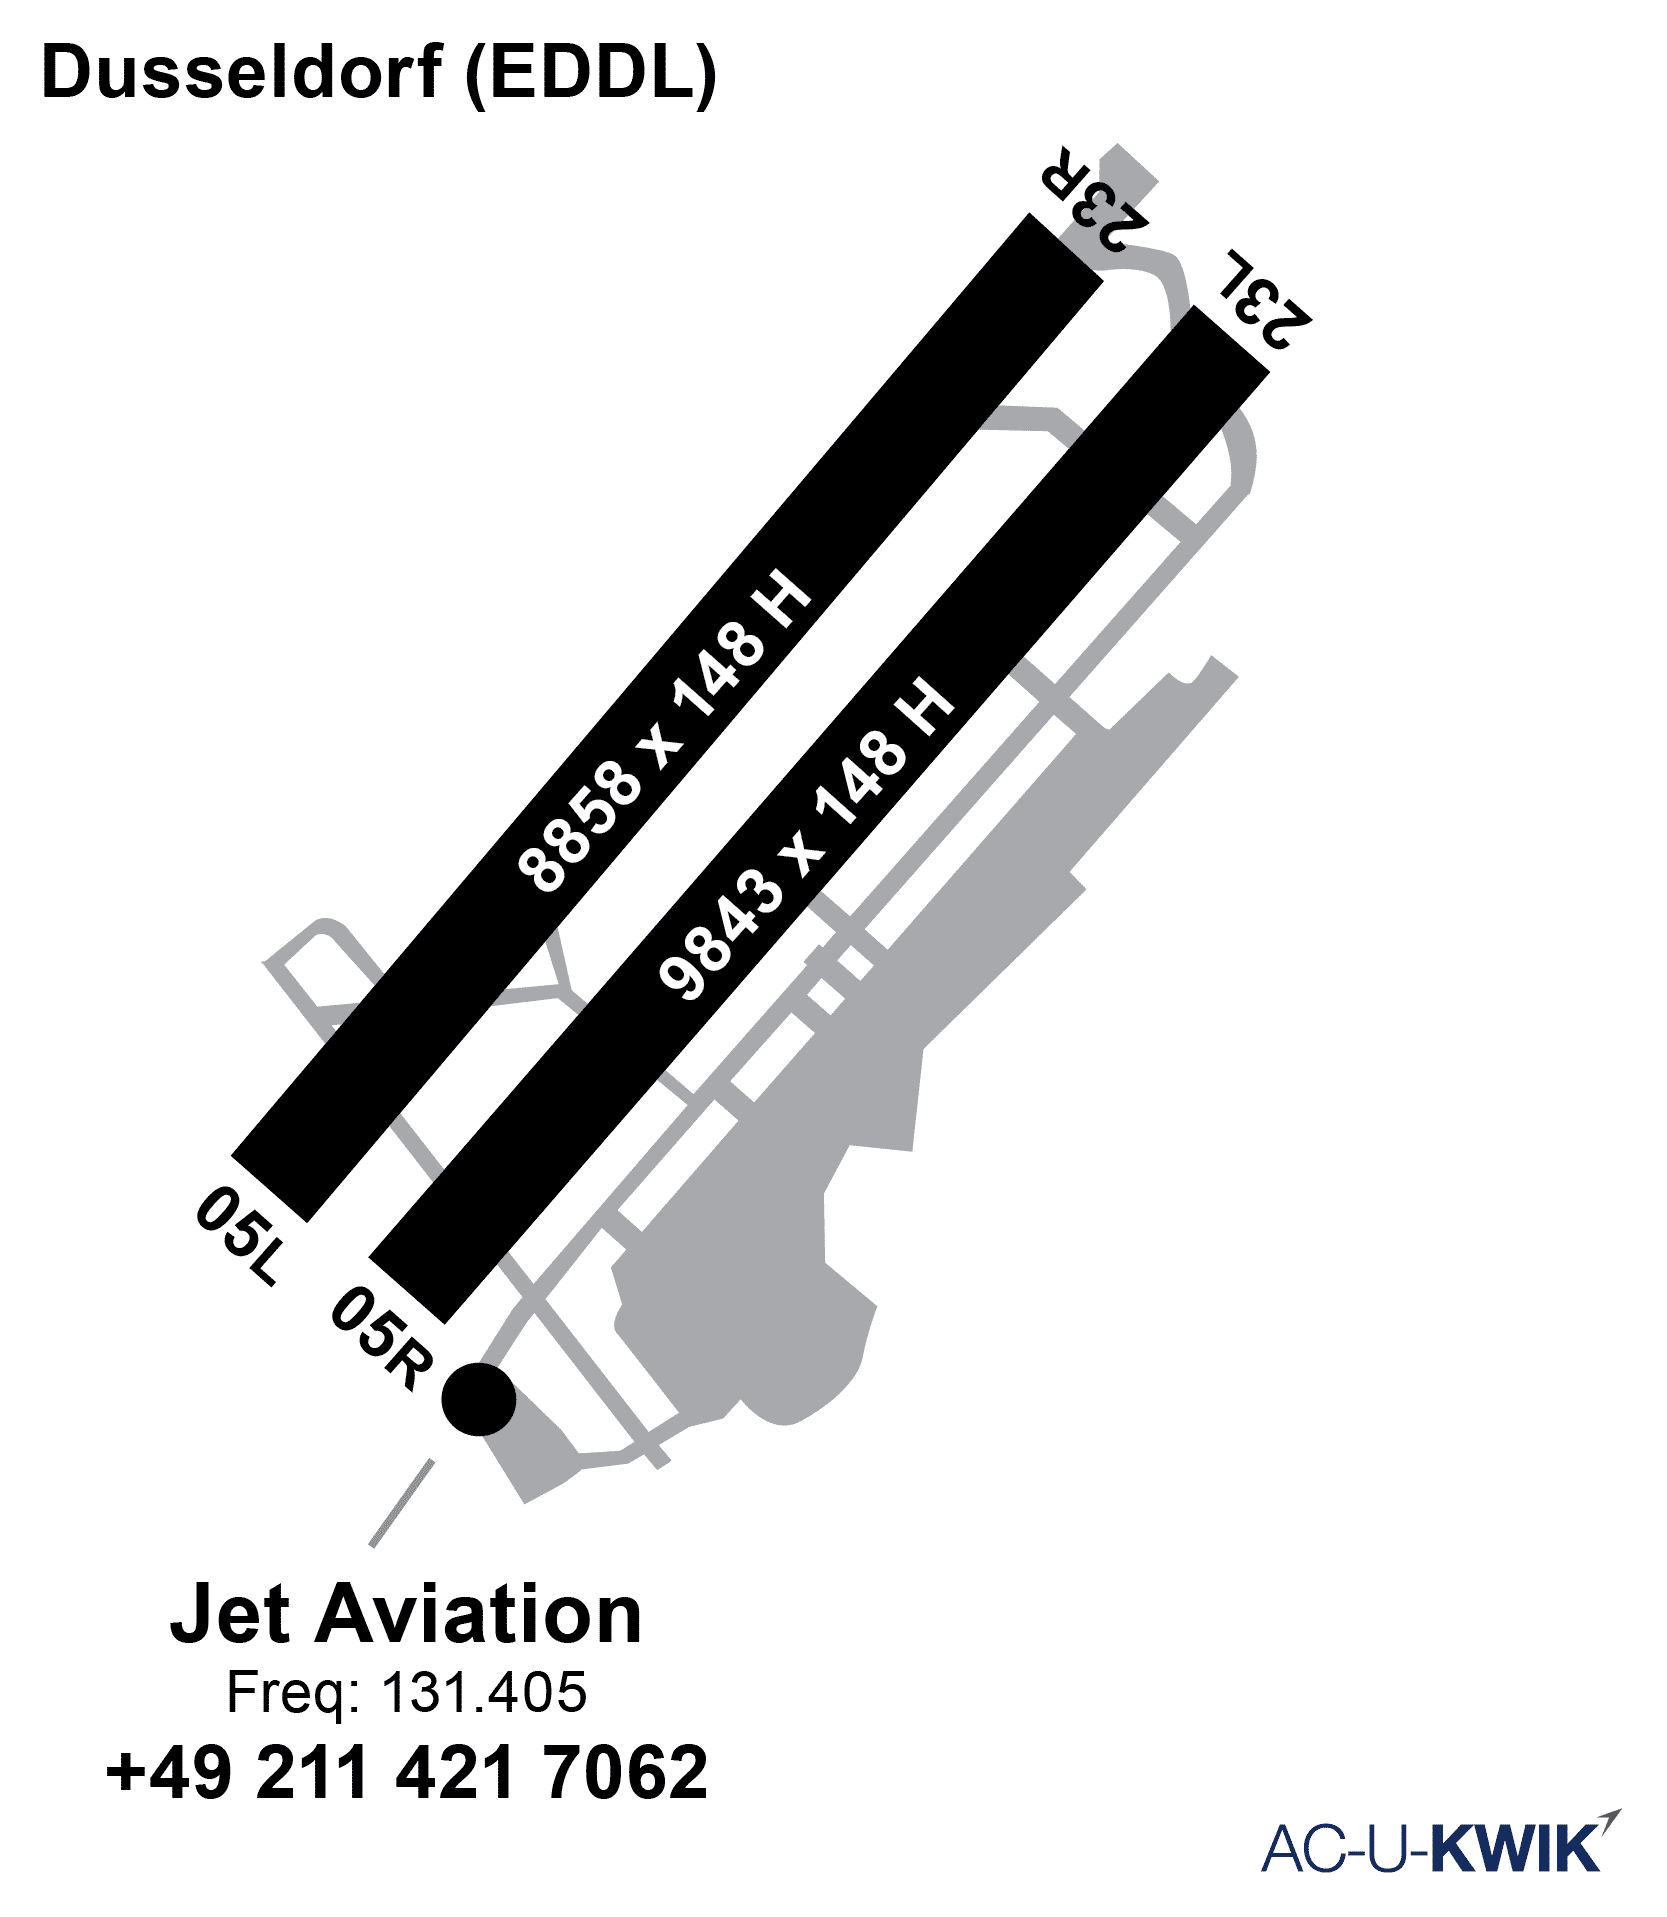 Jet Aviation – Düsseldorf AC-U-KWIK Map